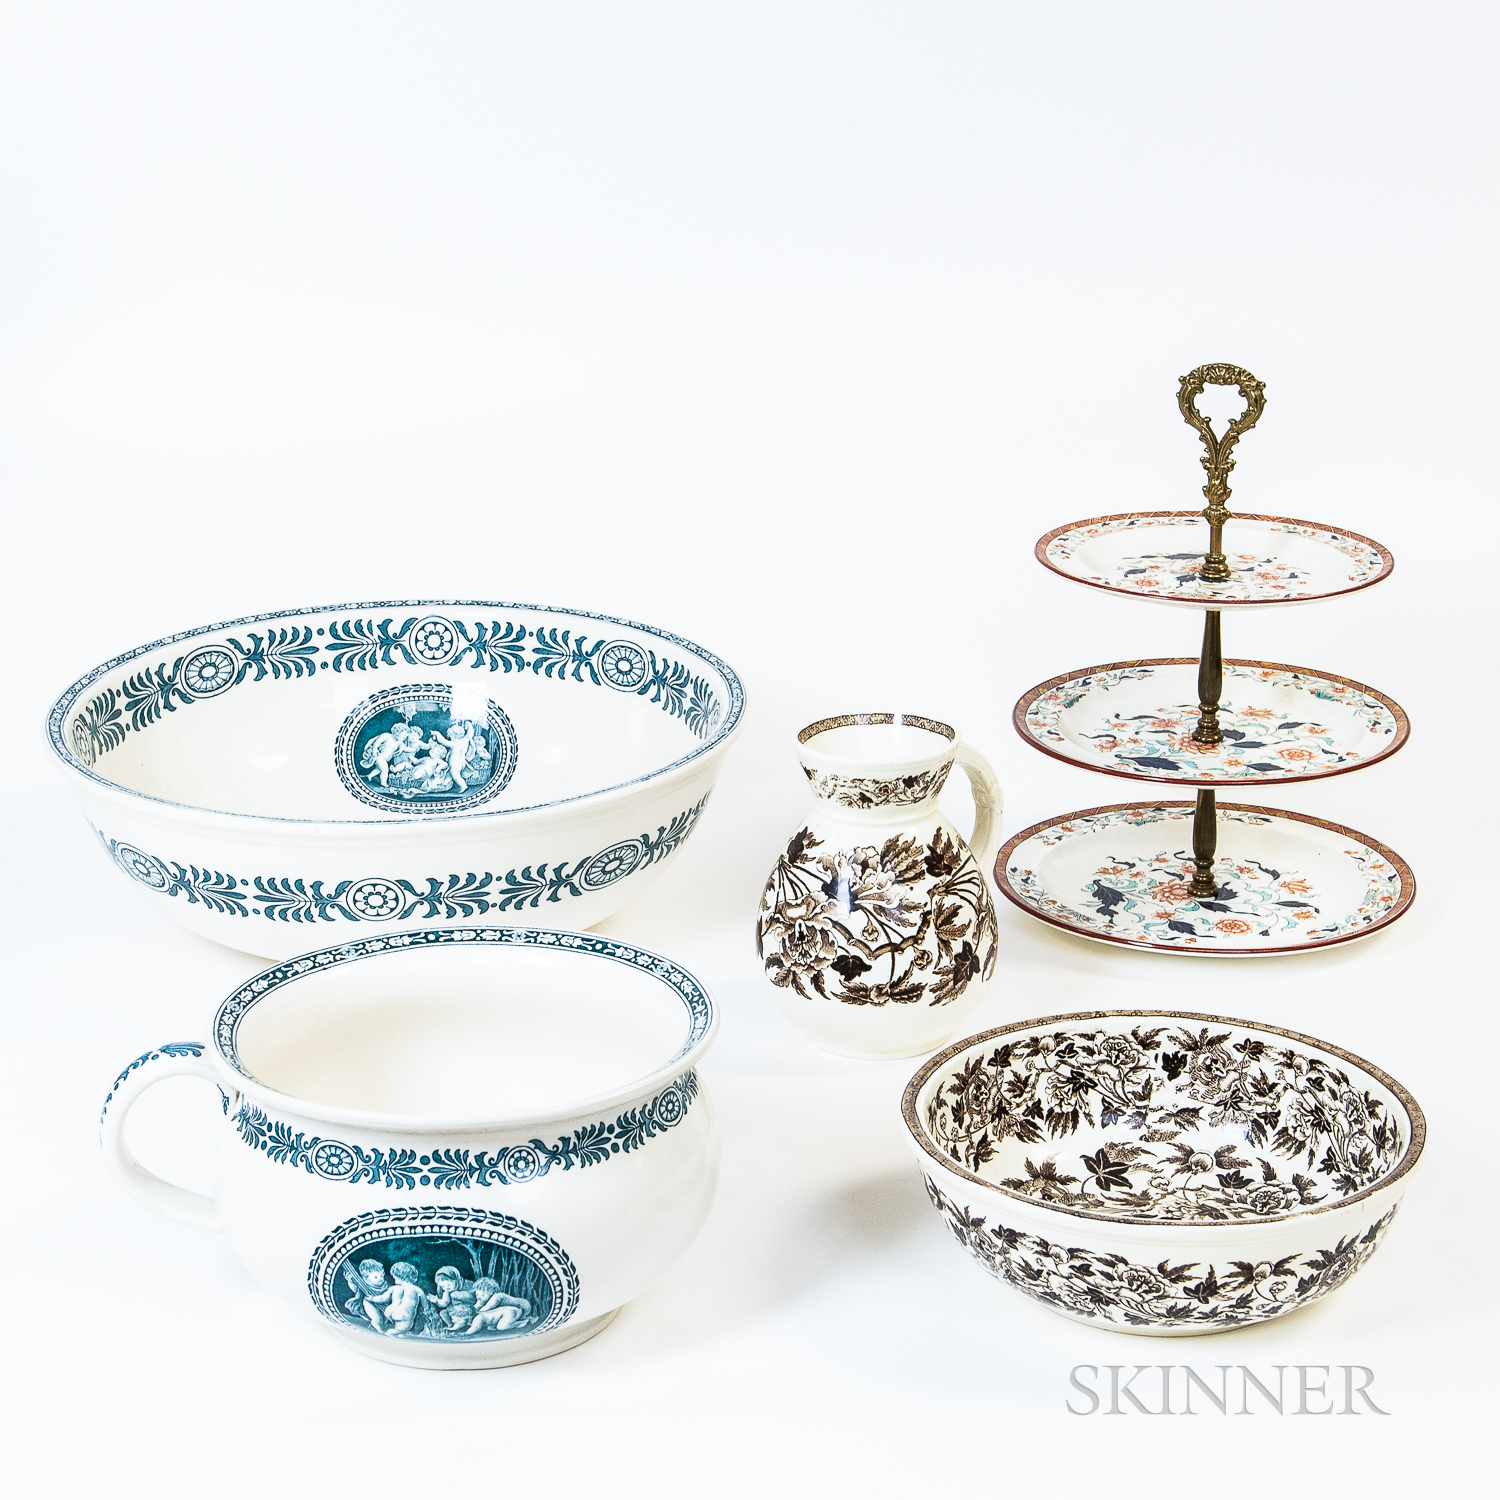 Five Pieces of Wedgwood Tableware